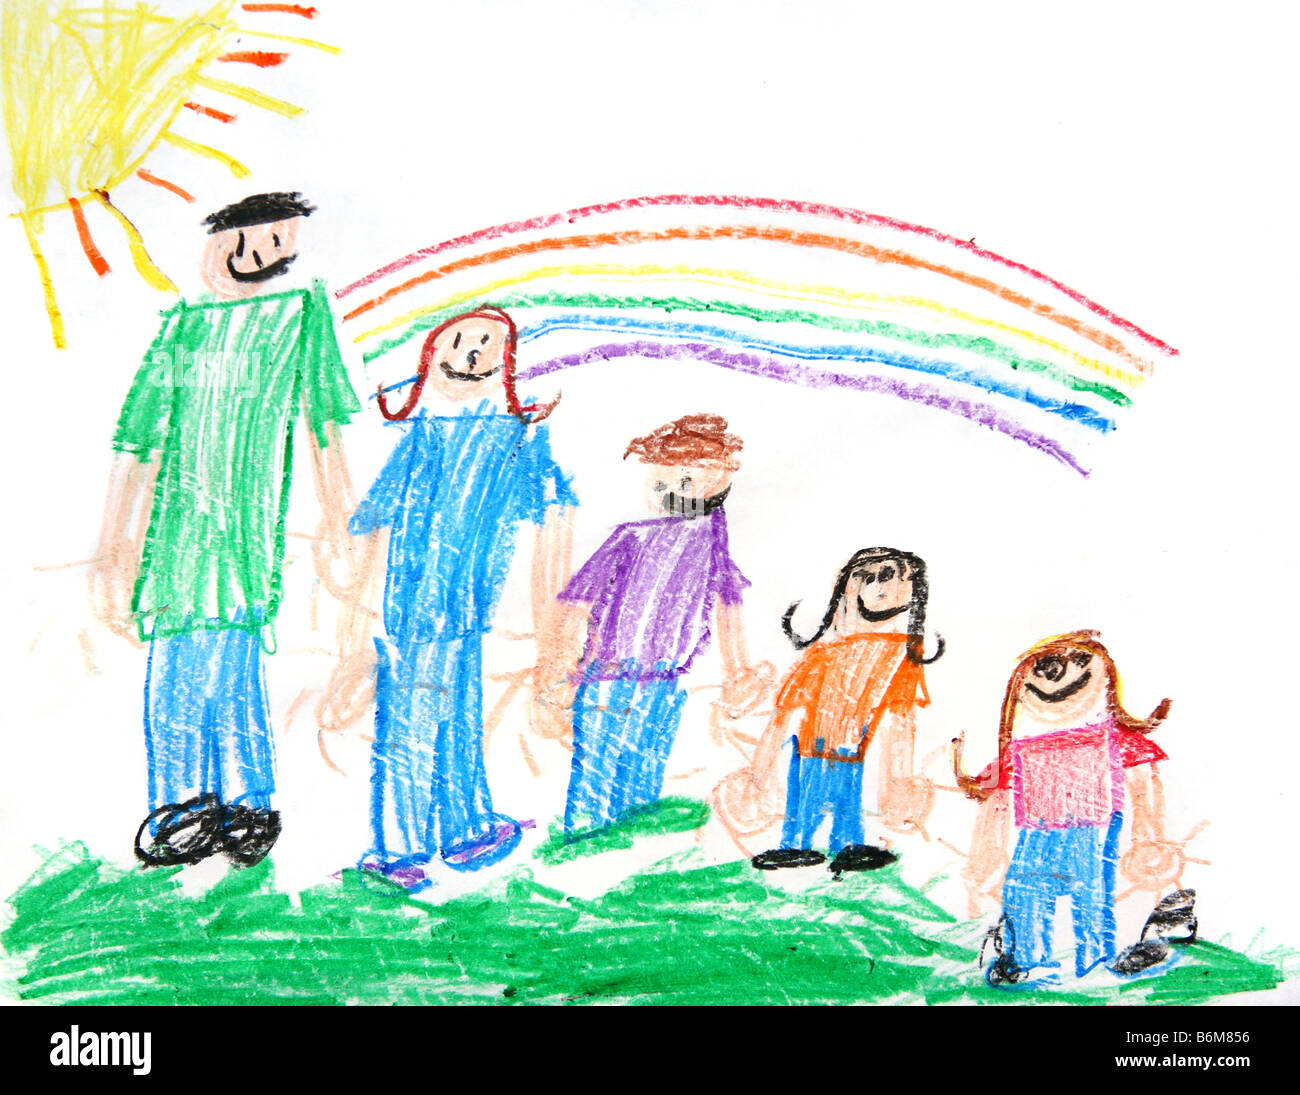 Childs Primitive Crayon Drawing of a Family of 5 People With a Sun and Rainbow - Stock Image